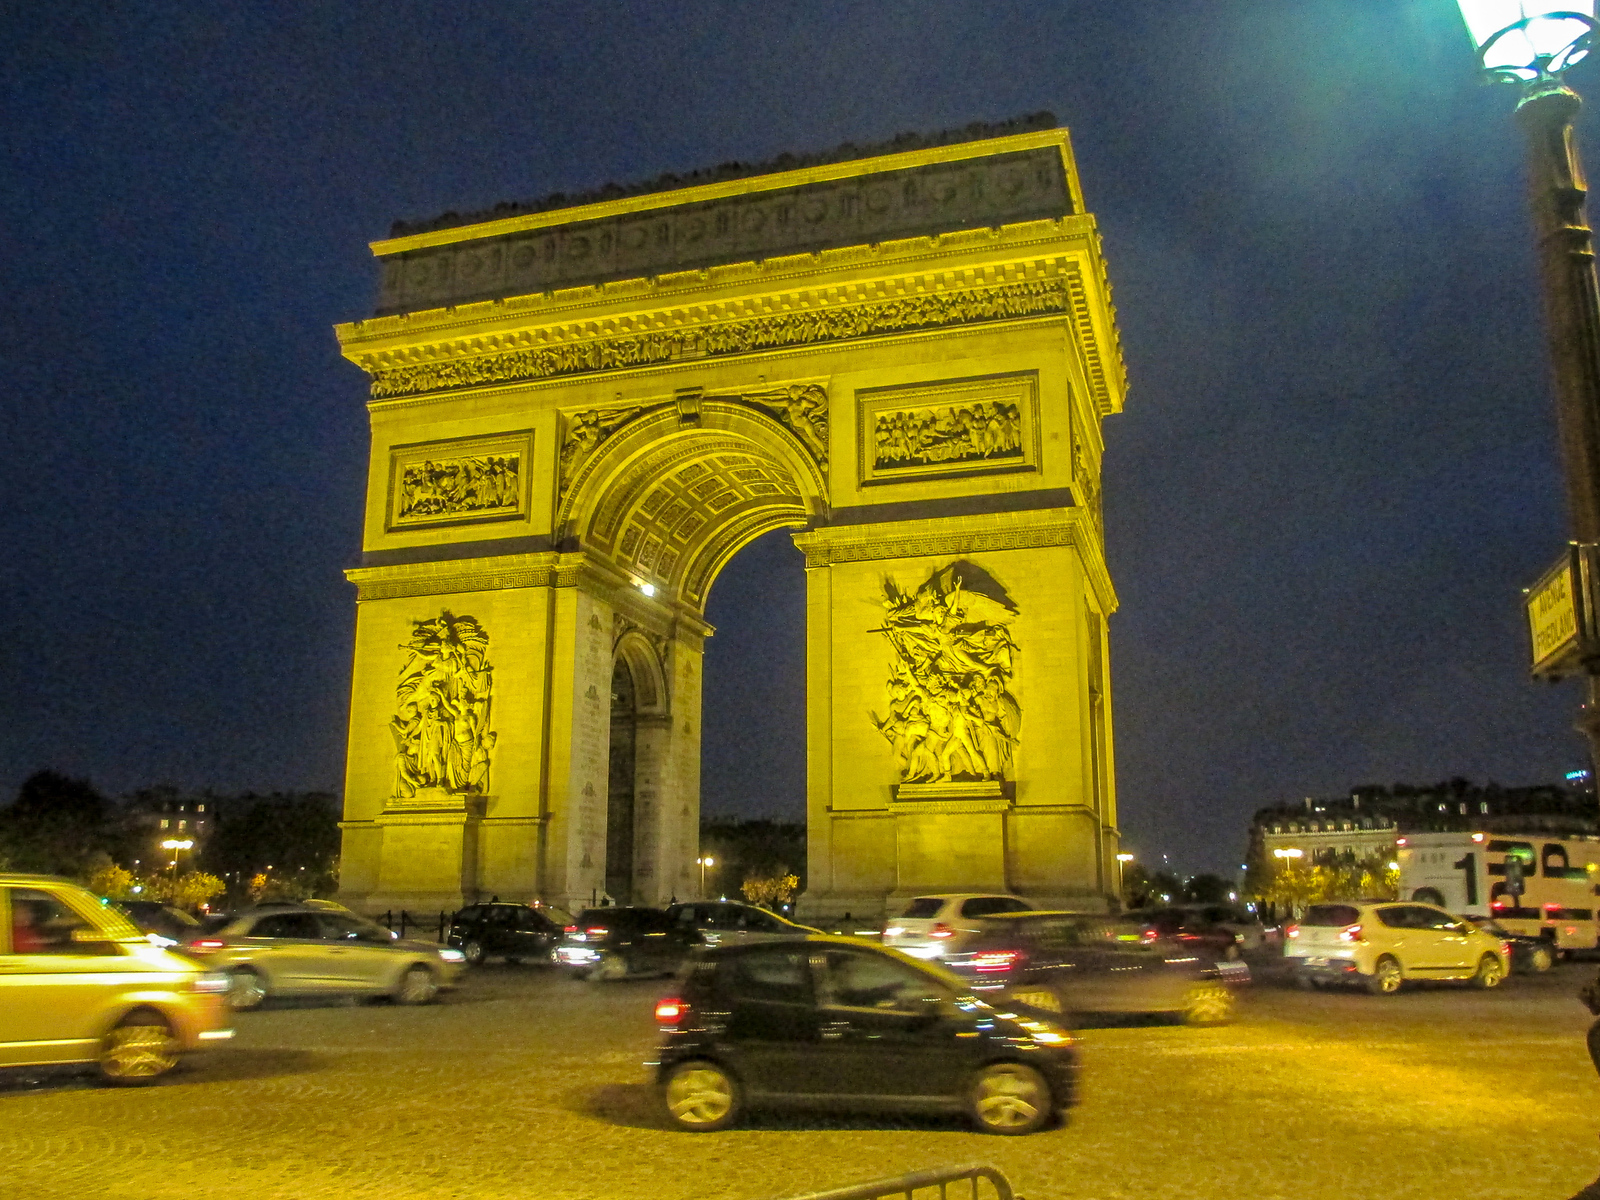 two days in paris itinerary should include climbing arc de triomphe